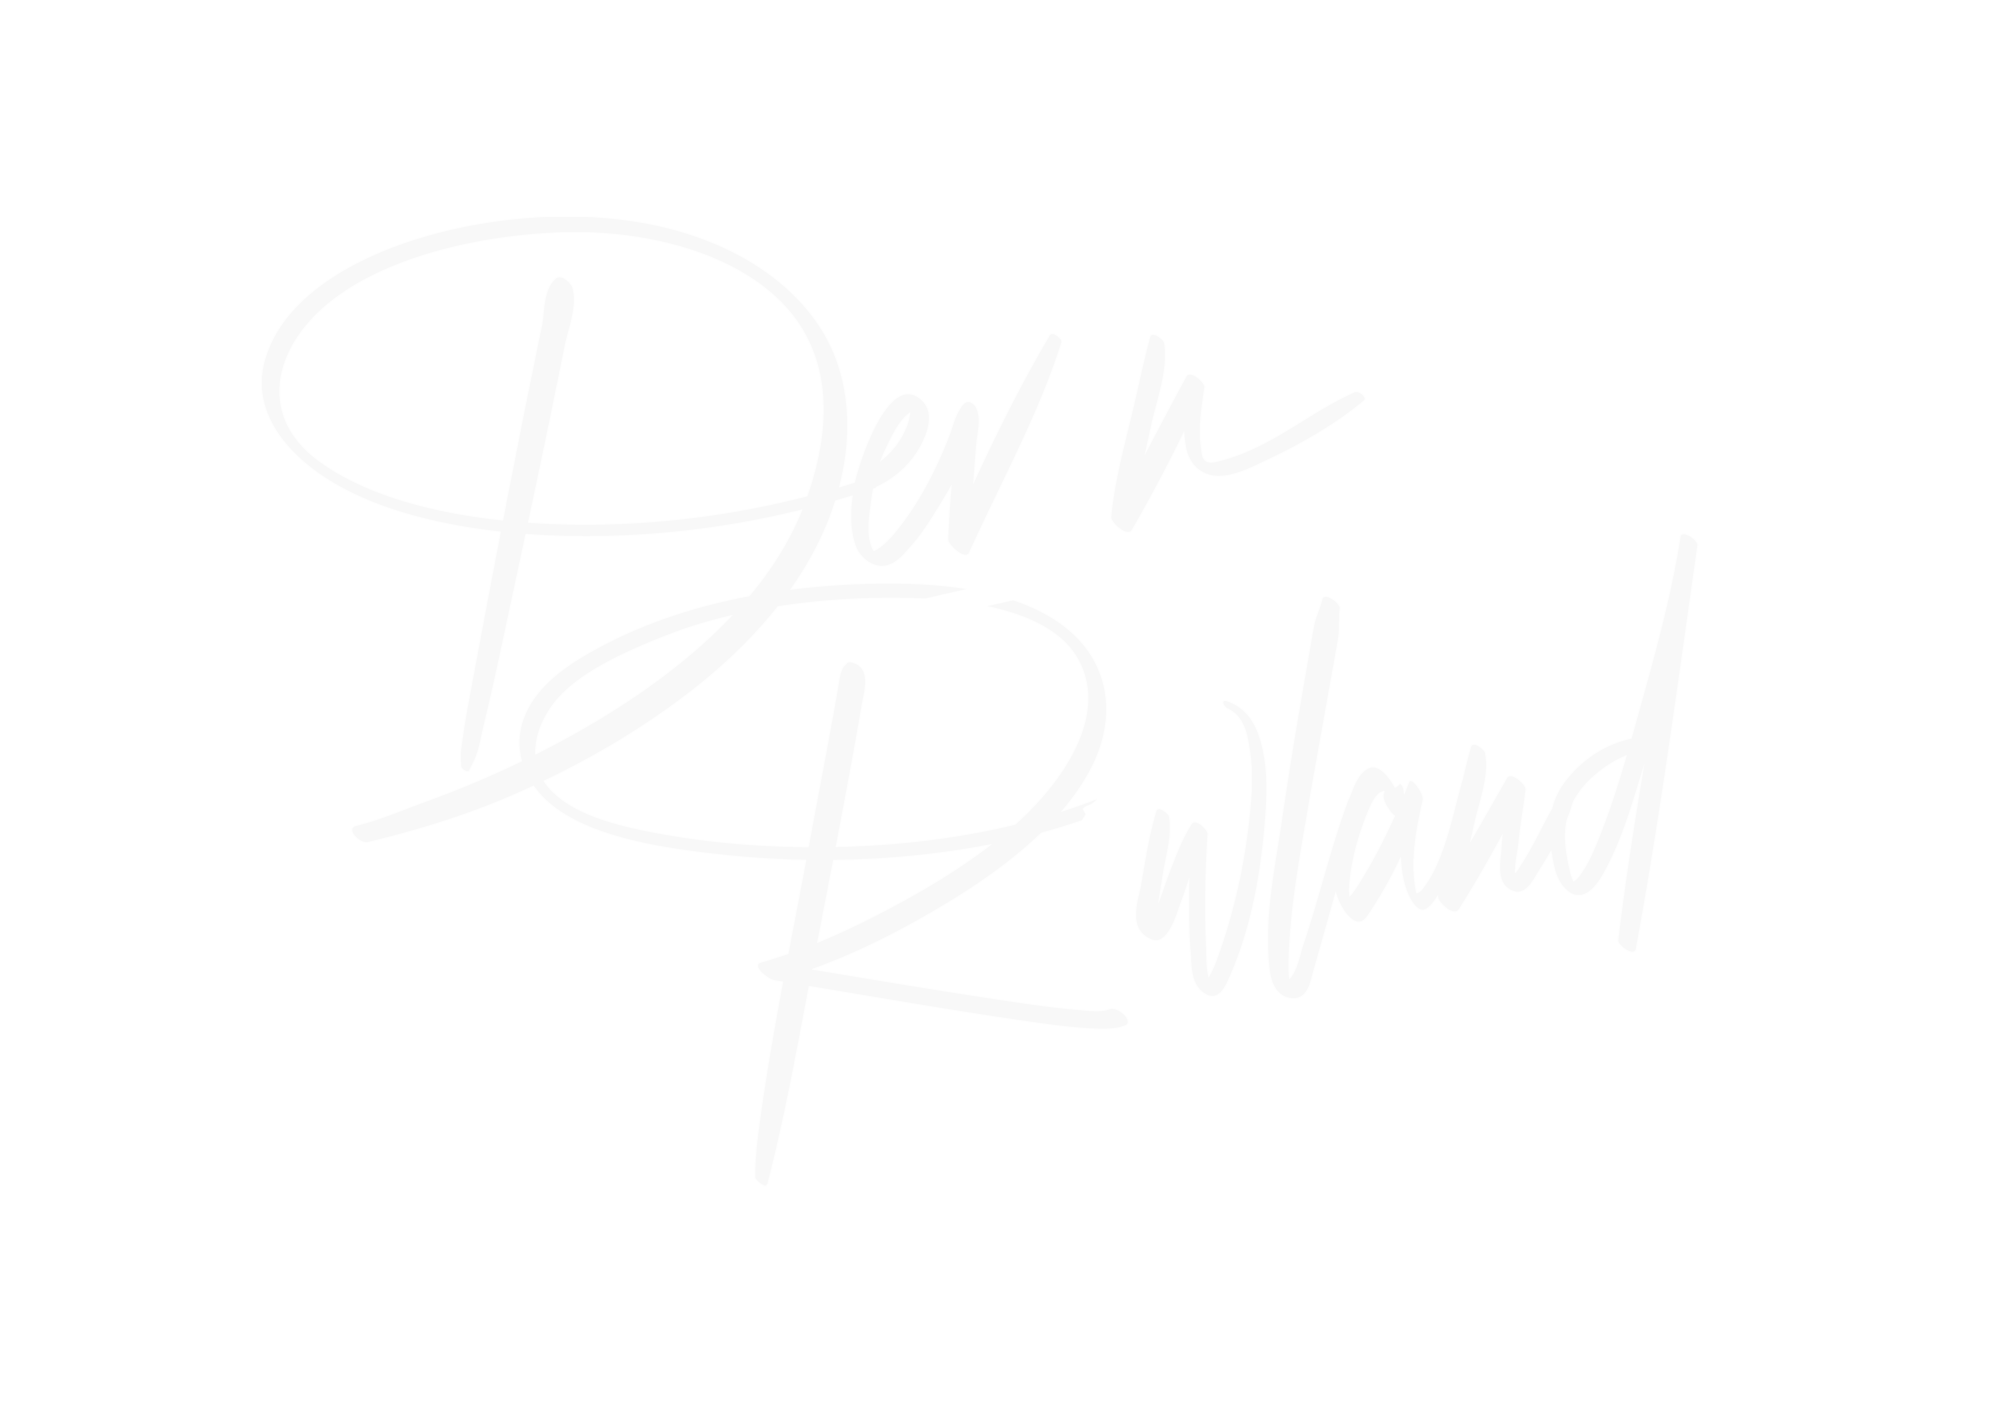 Baltimore and DC wedding photography specializing in unique weddings, portraits, and events